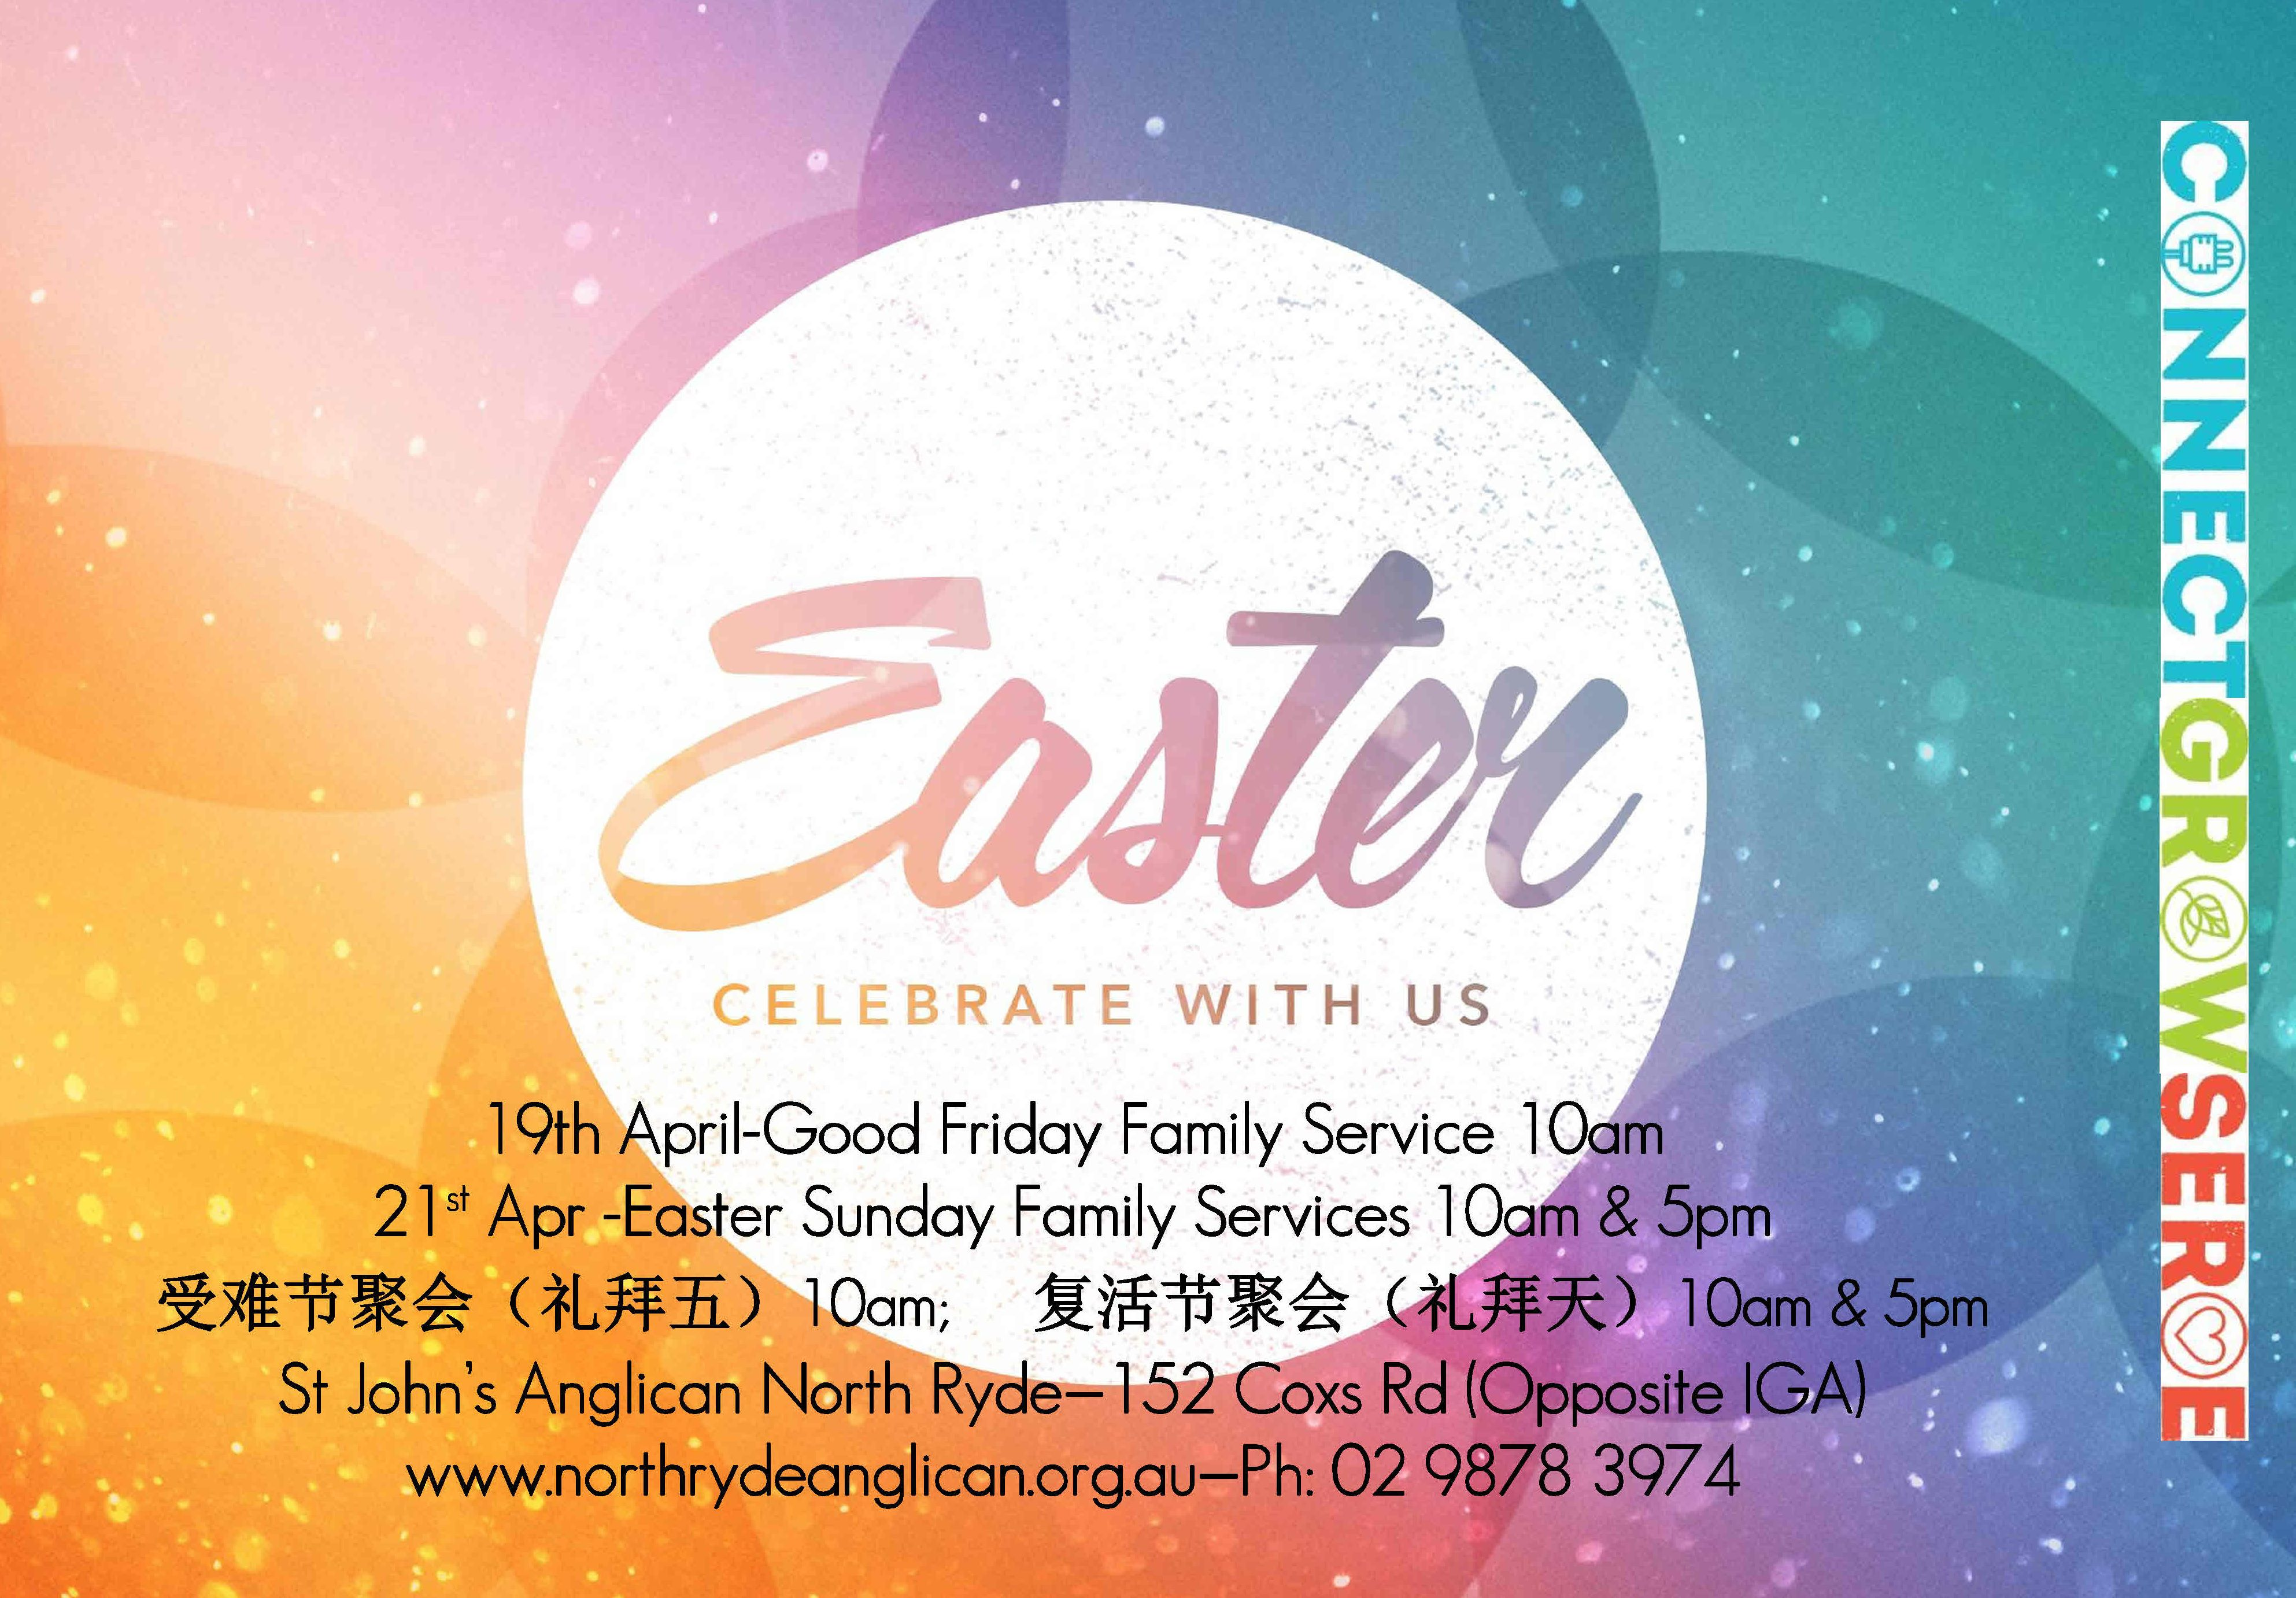 <p>Join us at 10am on Good Friday (19th April) for an Easter Service (with mandarin translation) and Easter Sunday 10am &amp; 5pm (21st April)</p>